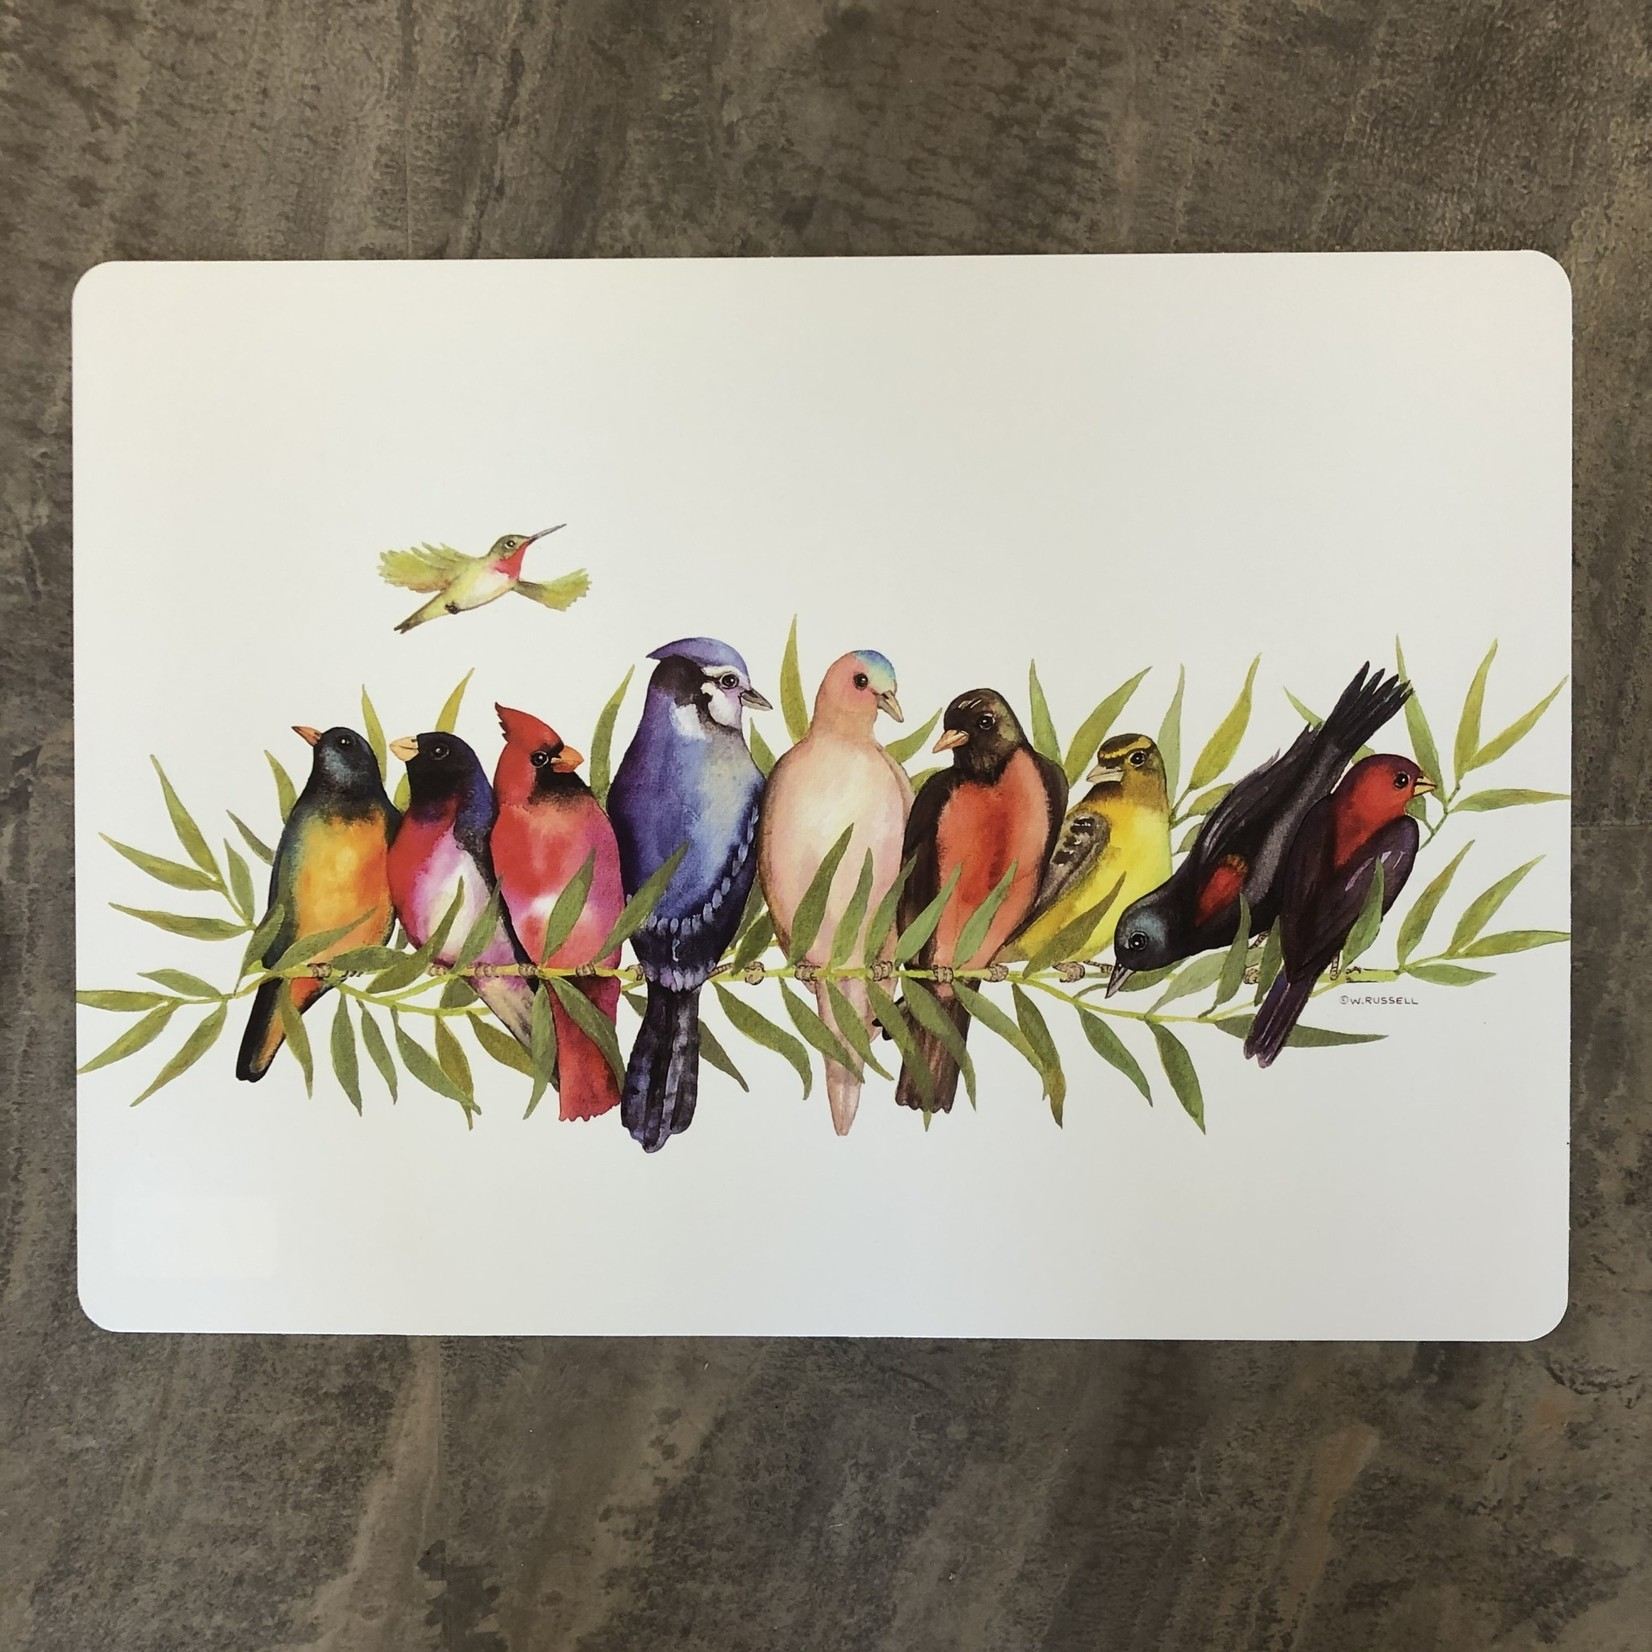 Placemat - Birds on a Branch